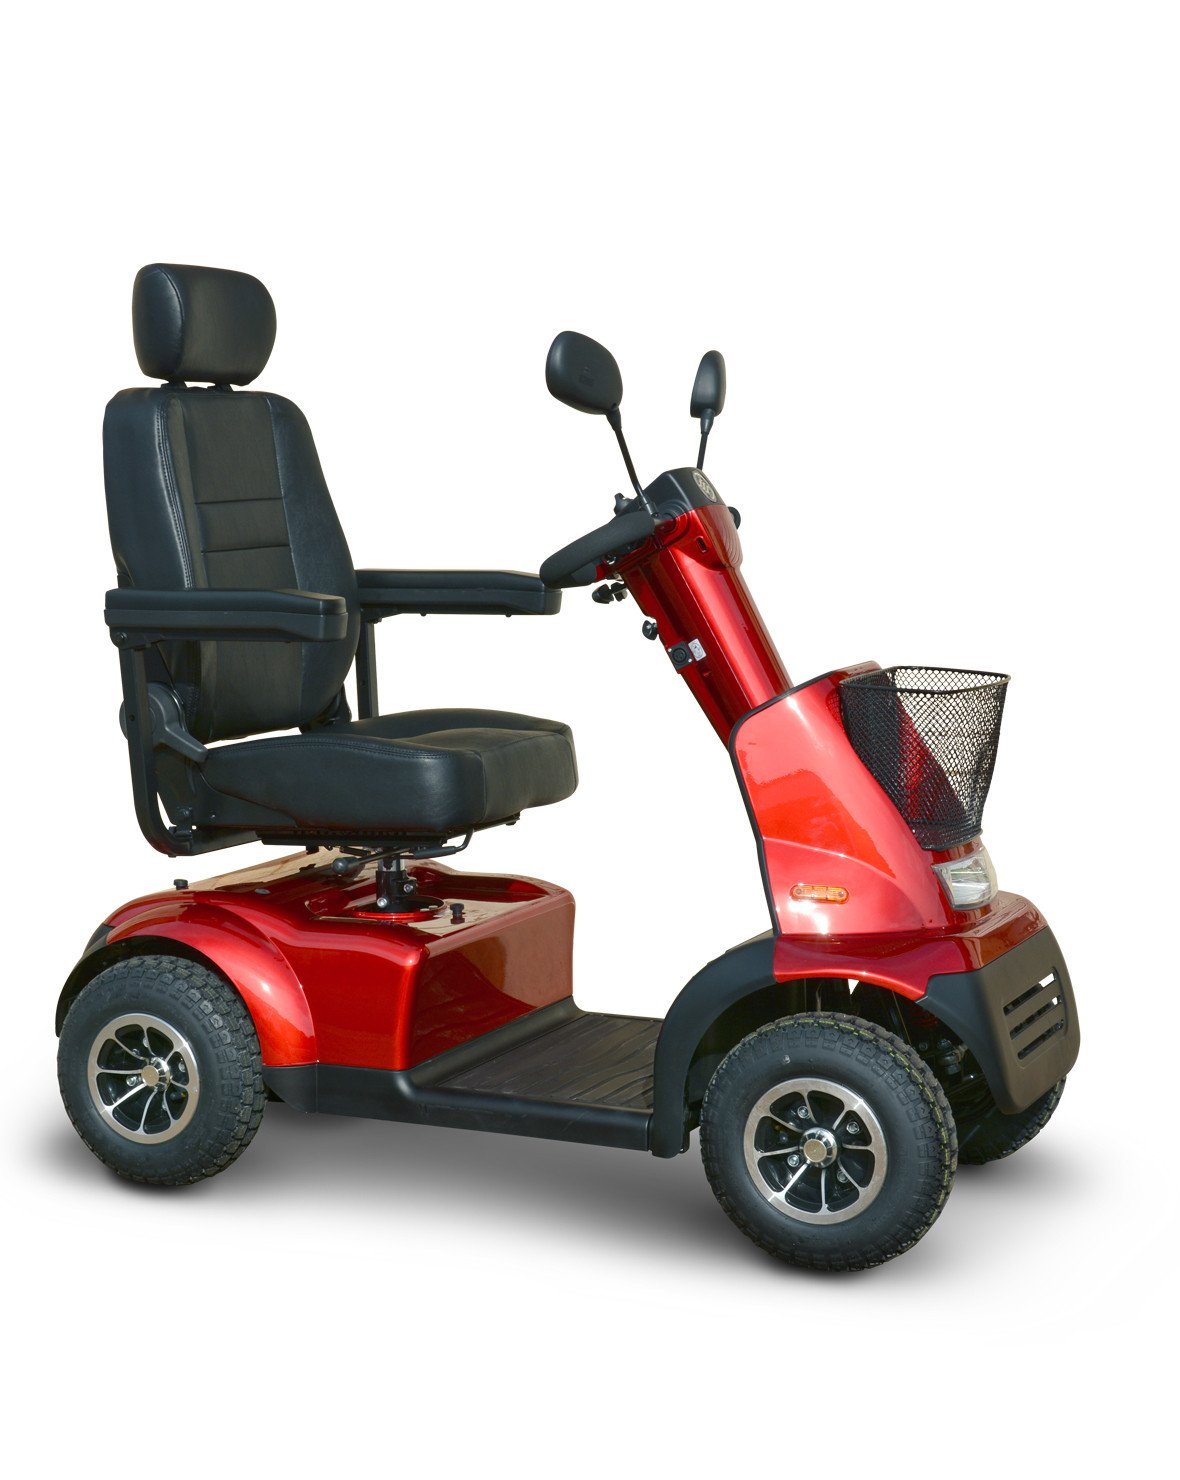 Afiscooter C3 3-Wheel Scooter - Red